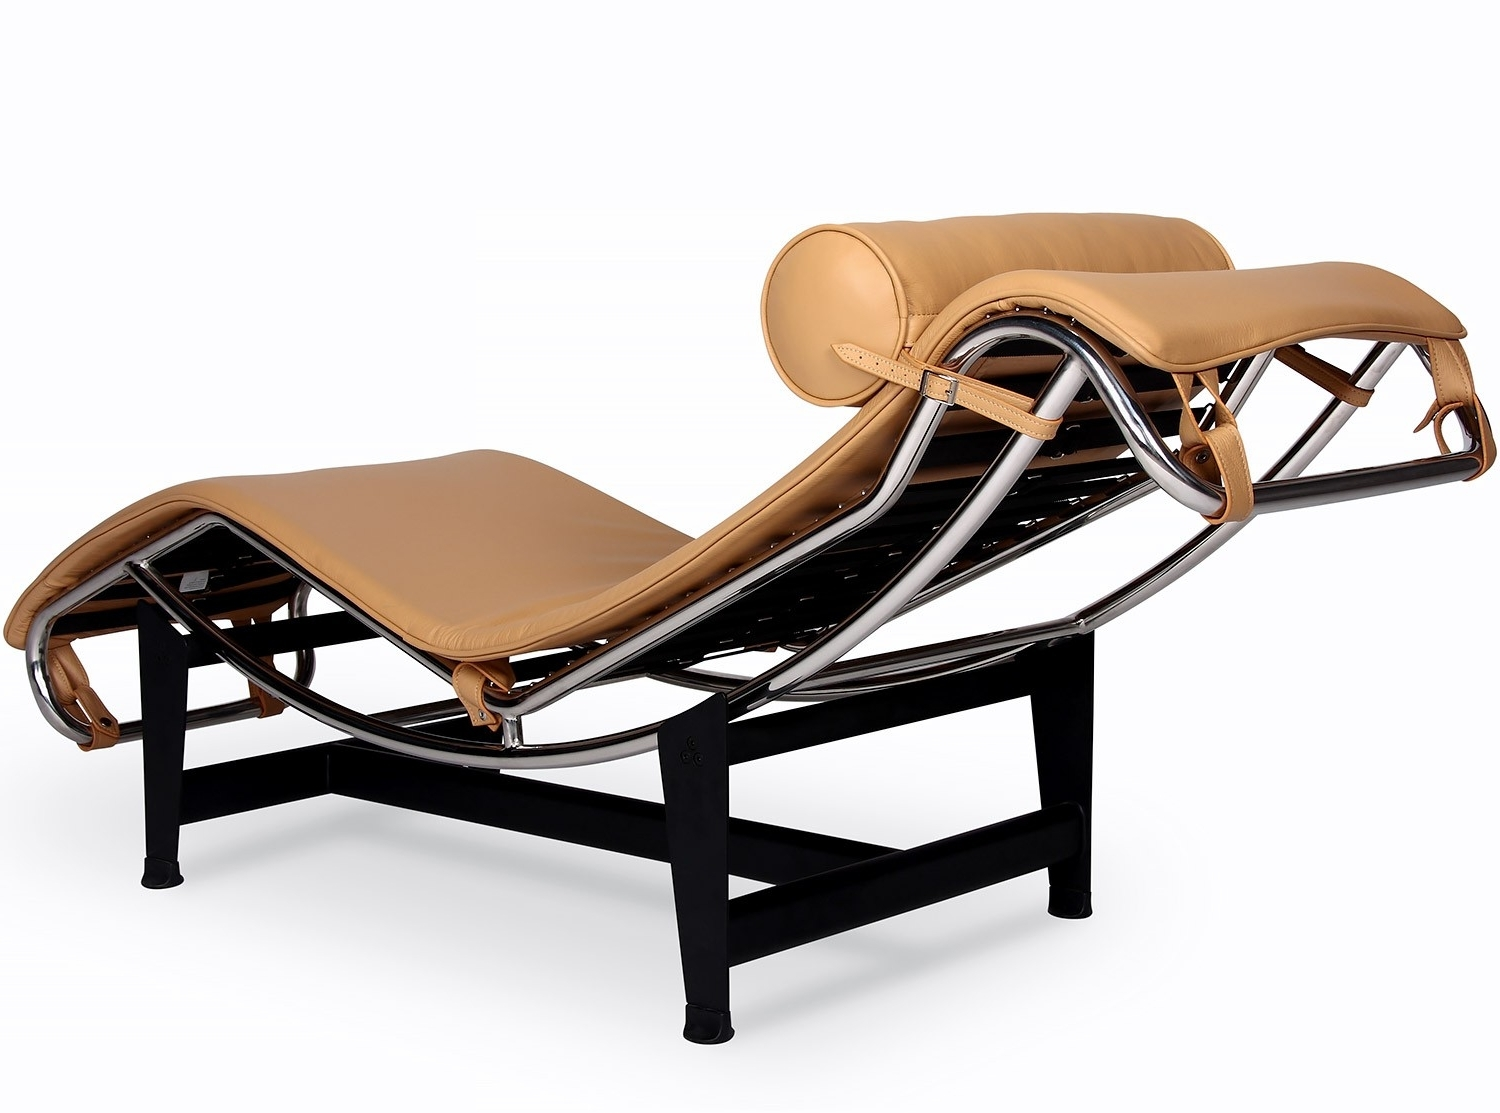 Le Corbusier Lc4 Chaise Longue (Platinum Replica) With Regard To Most Current Le Corbusier Chaise Lounges (View 8 of 15)